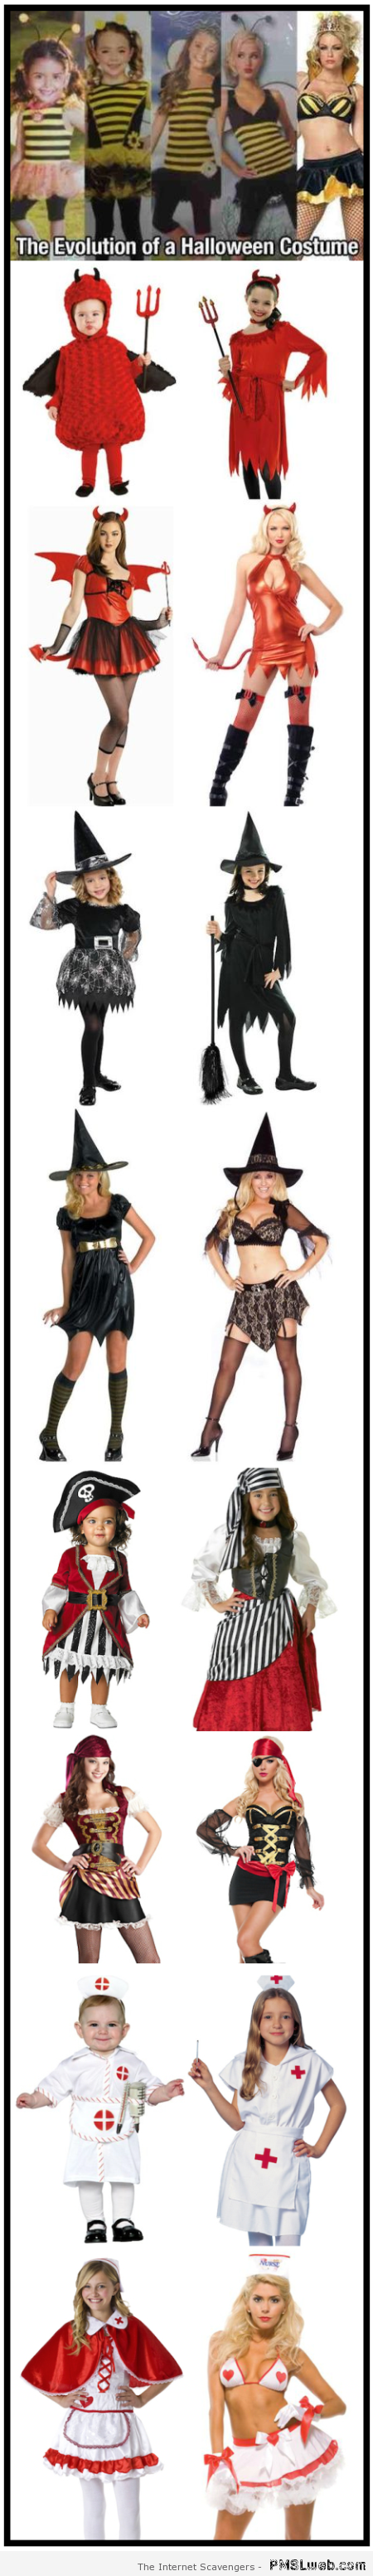 Evolution of Halloween costumes – Halloween funnies at PMSLweb.com